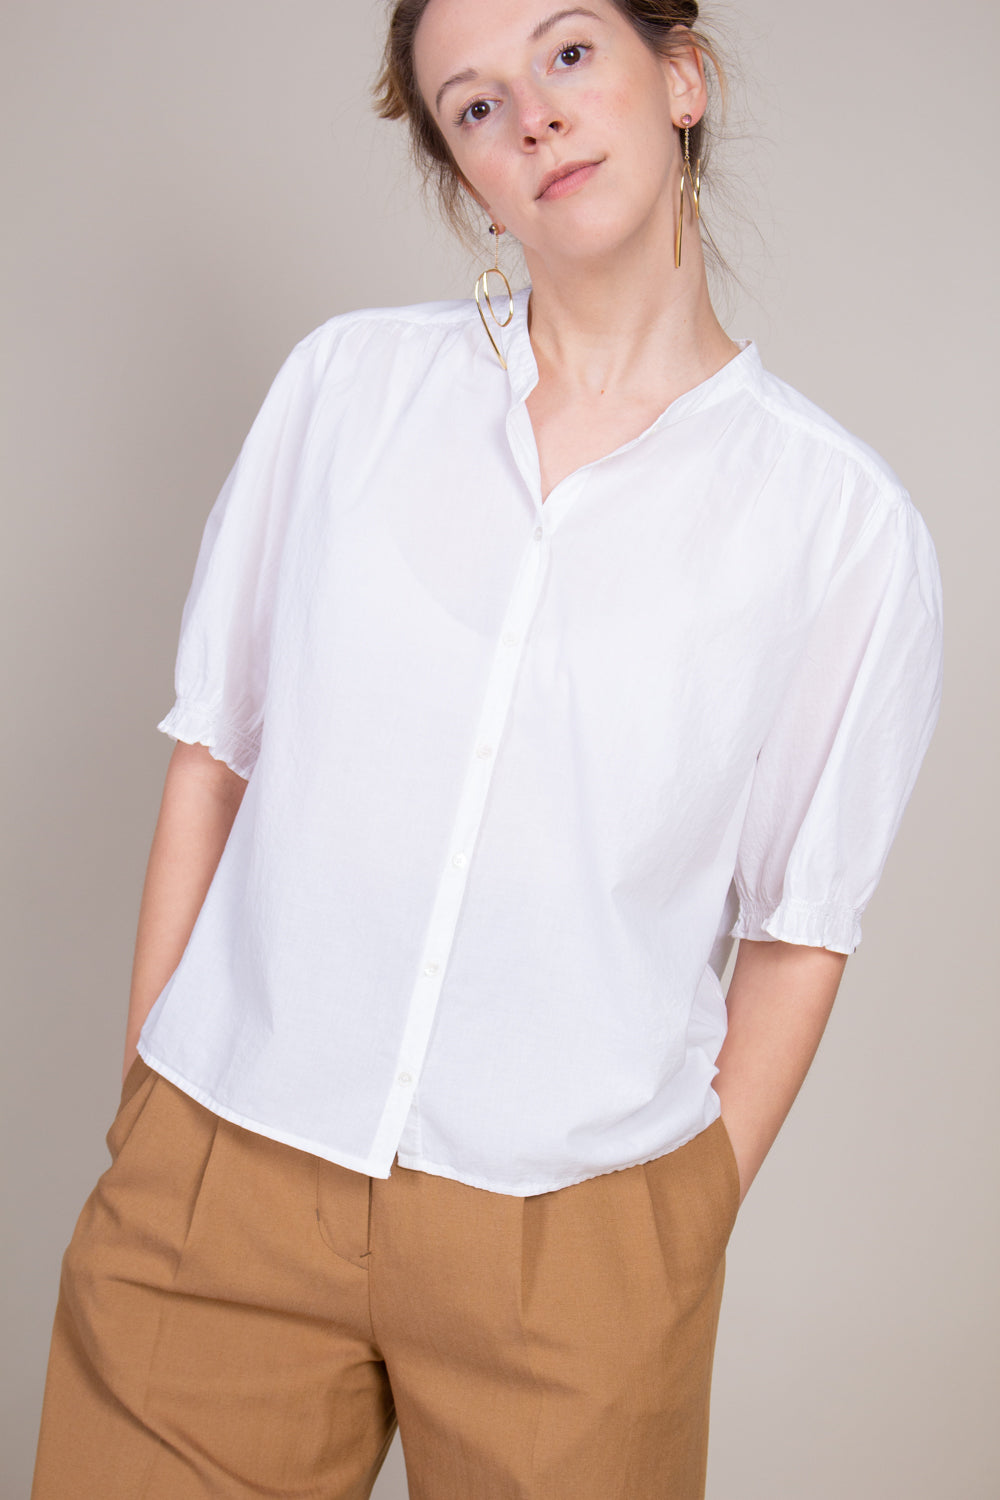 Eden Shirt in White